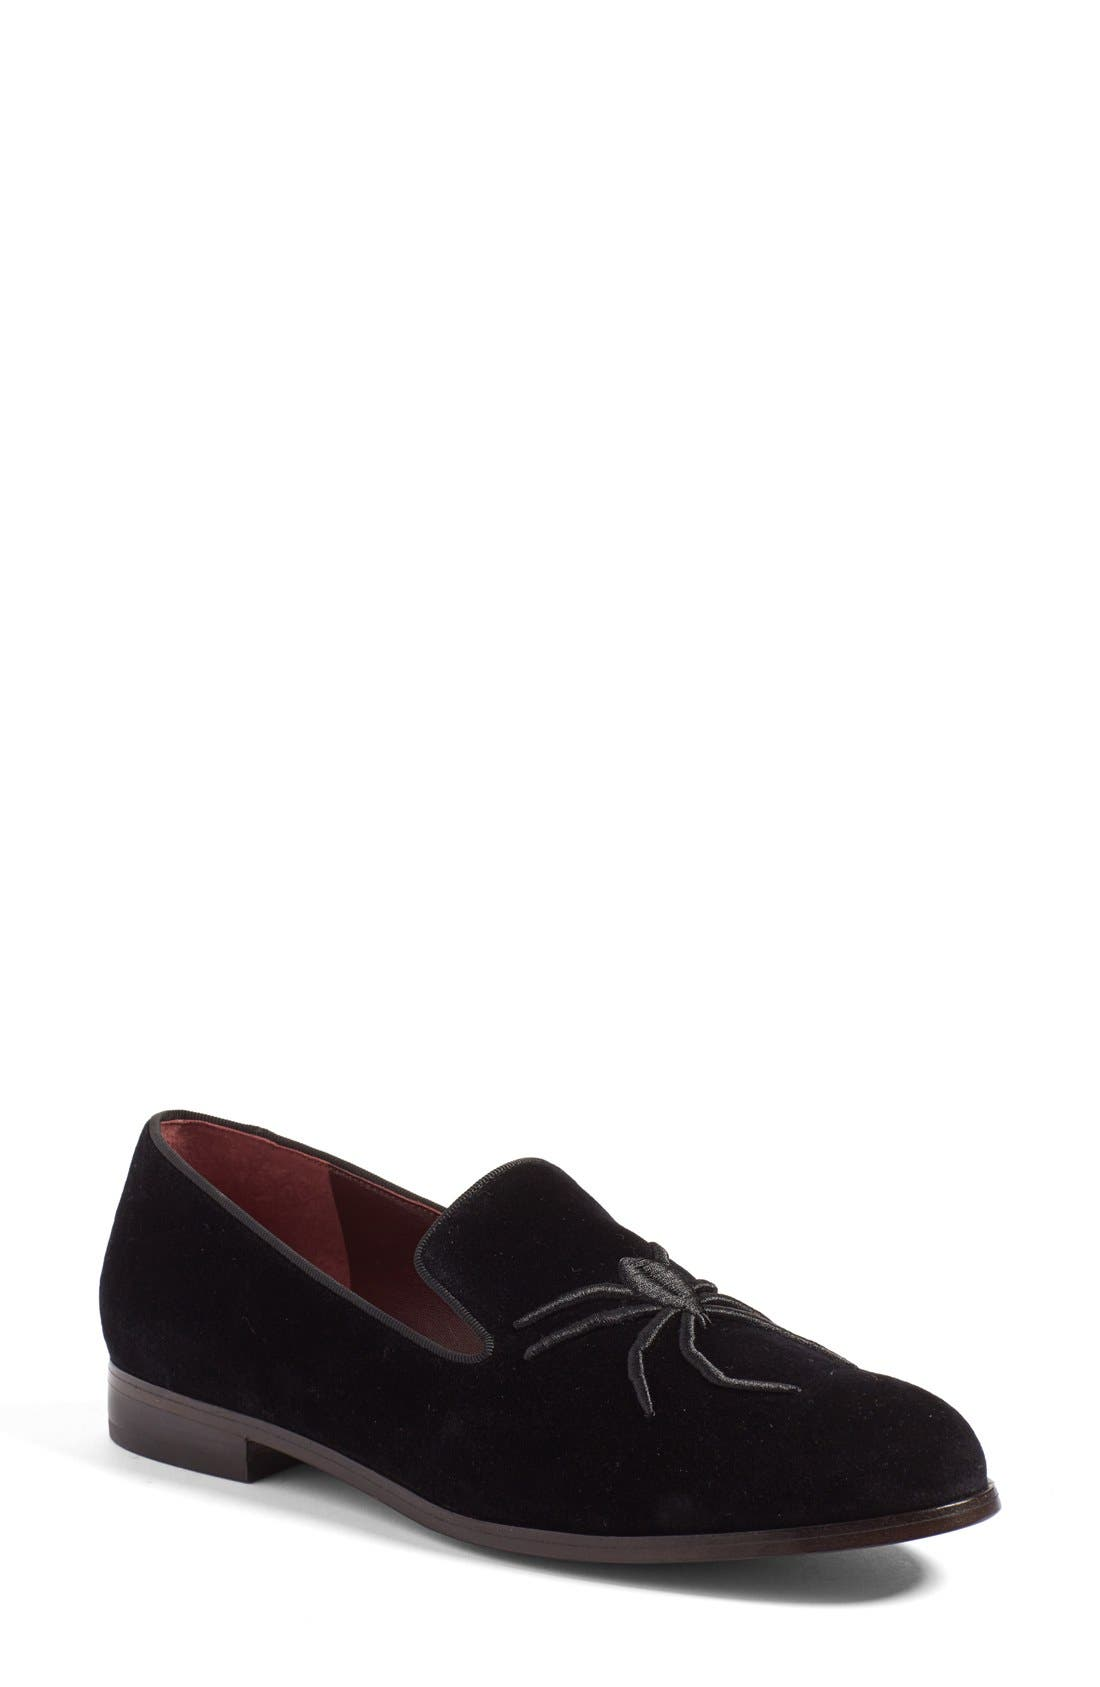 Alternate Image 1 Selected - MARC JACOBS 'Zoe' Embroidered Spider Loafer (Women)